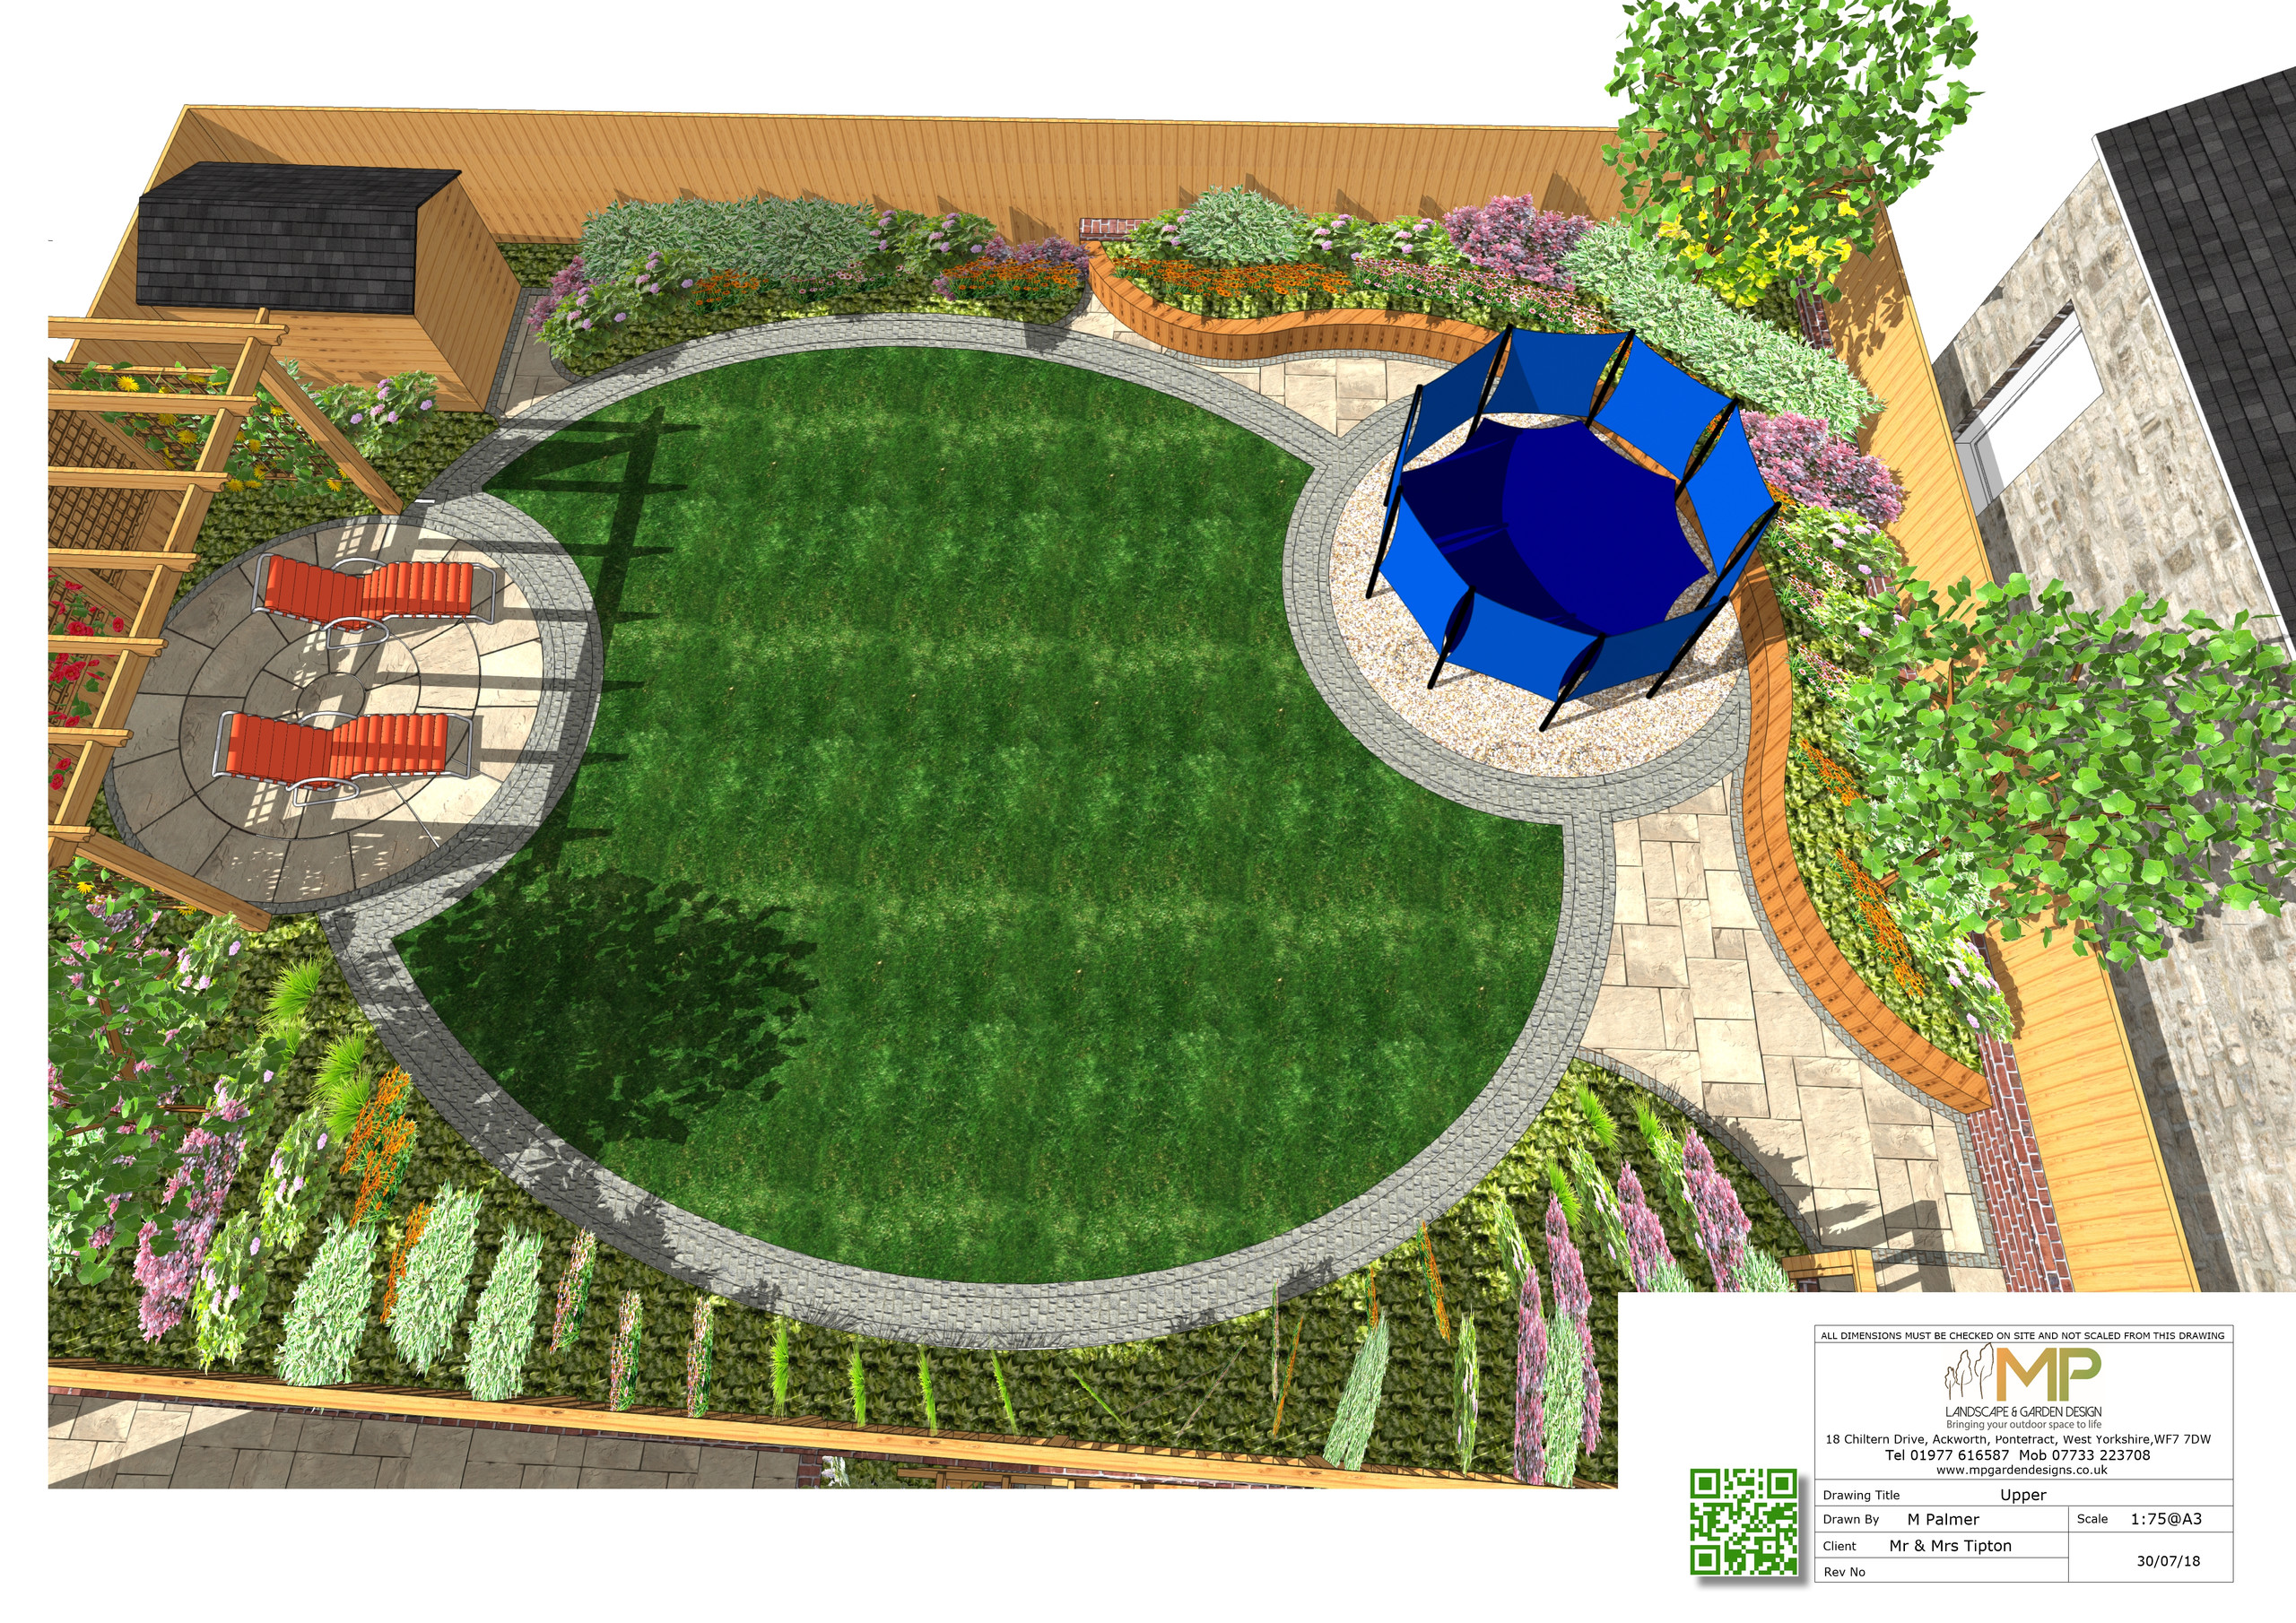 Garden layout plans 3D for a property in Castleford.